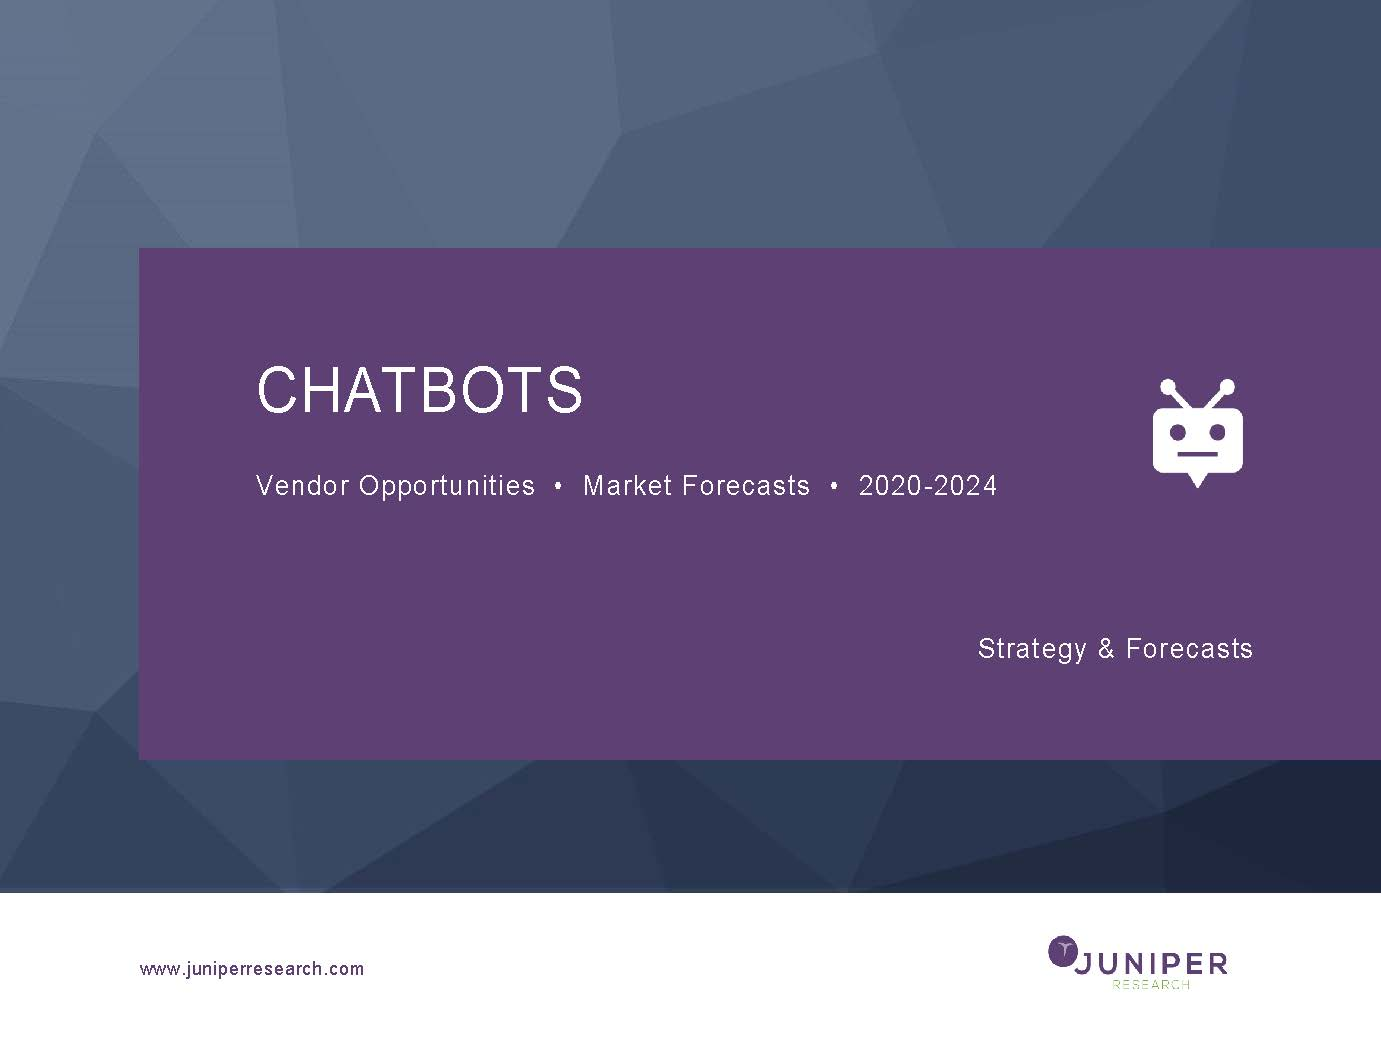 Chatbots: Vendor Opportunities & Market Forecasts 2020-2024